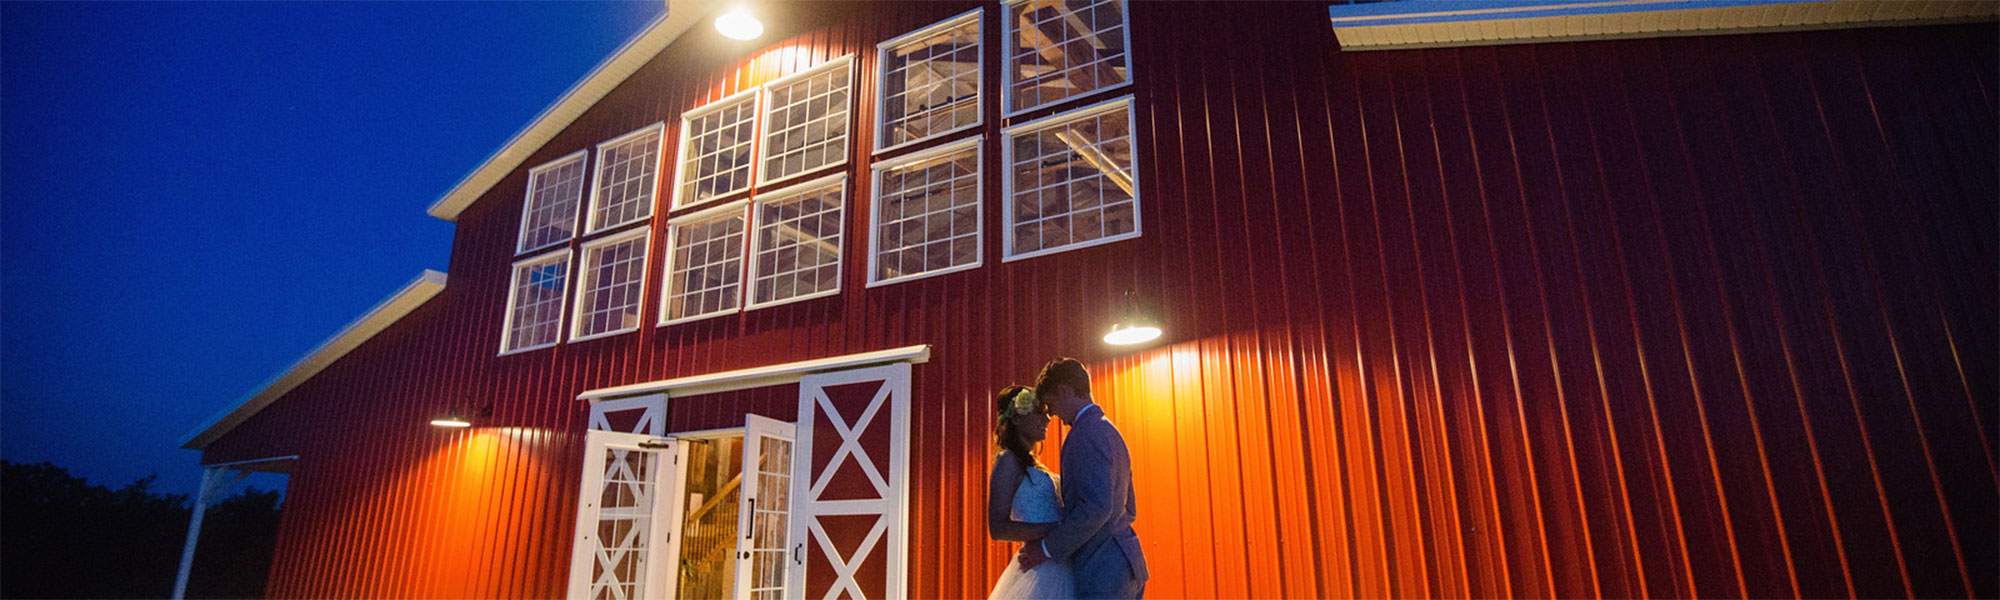 wedding barn at night with bride and groom